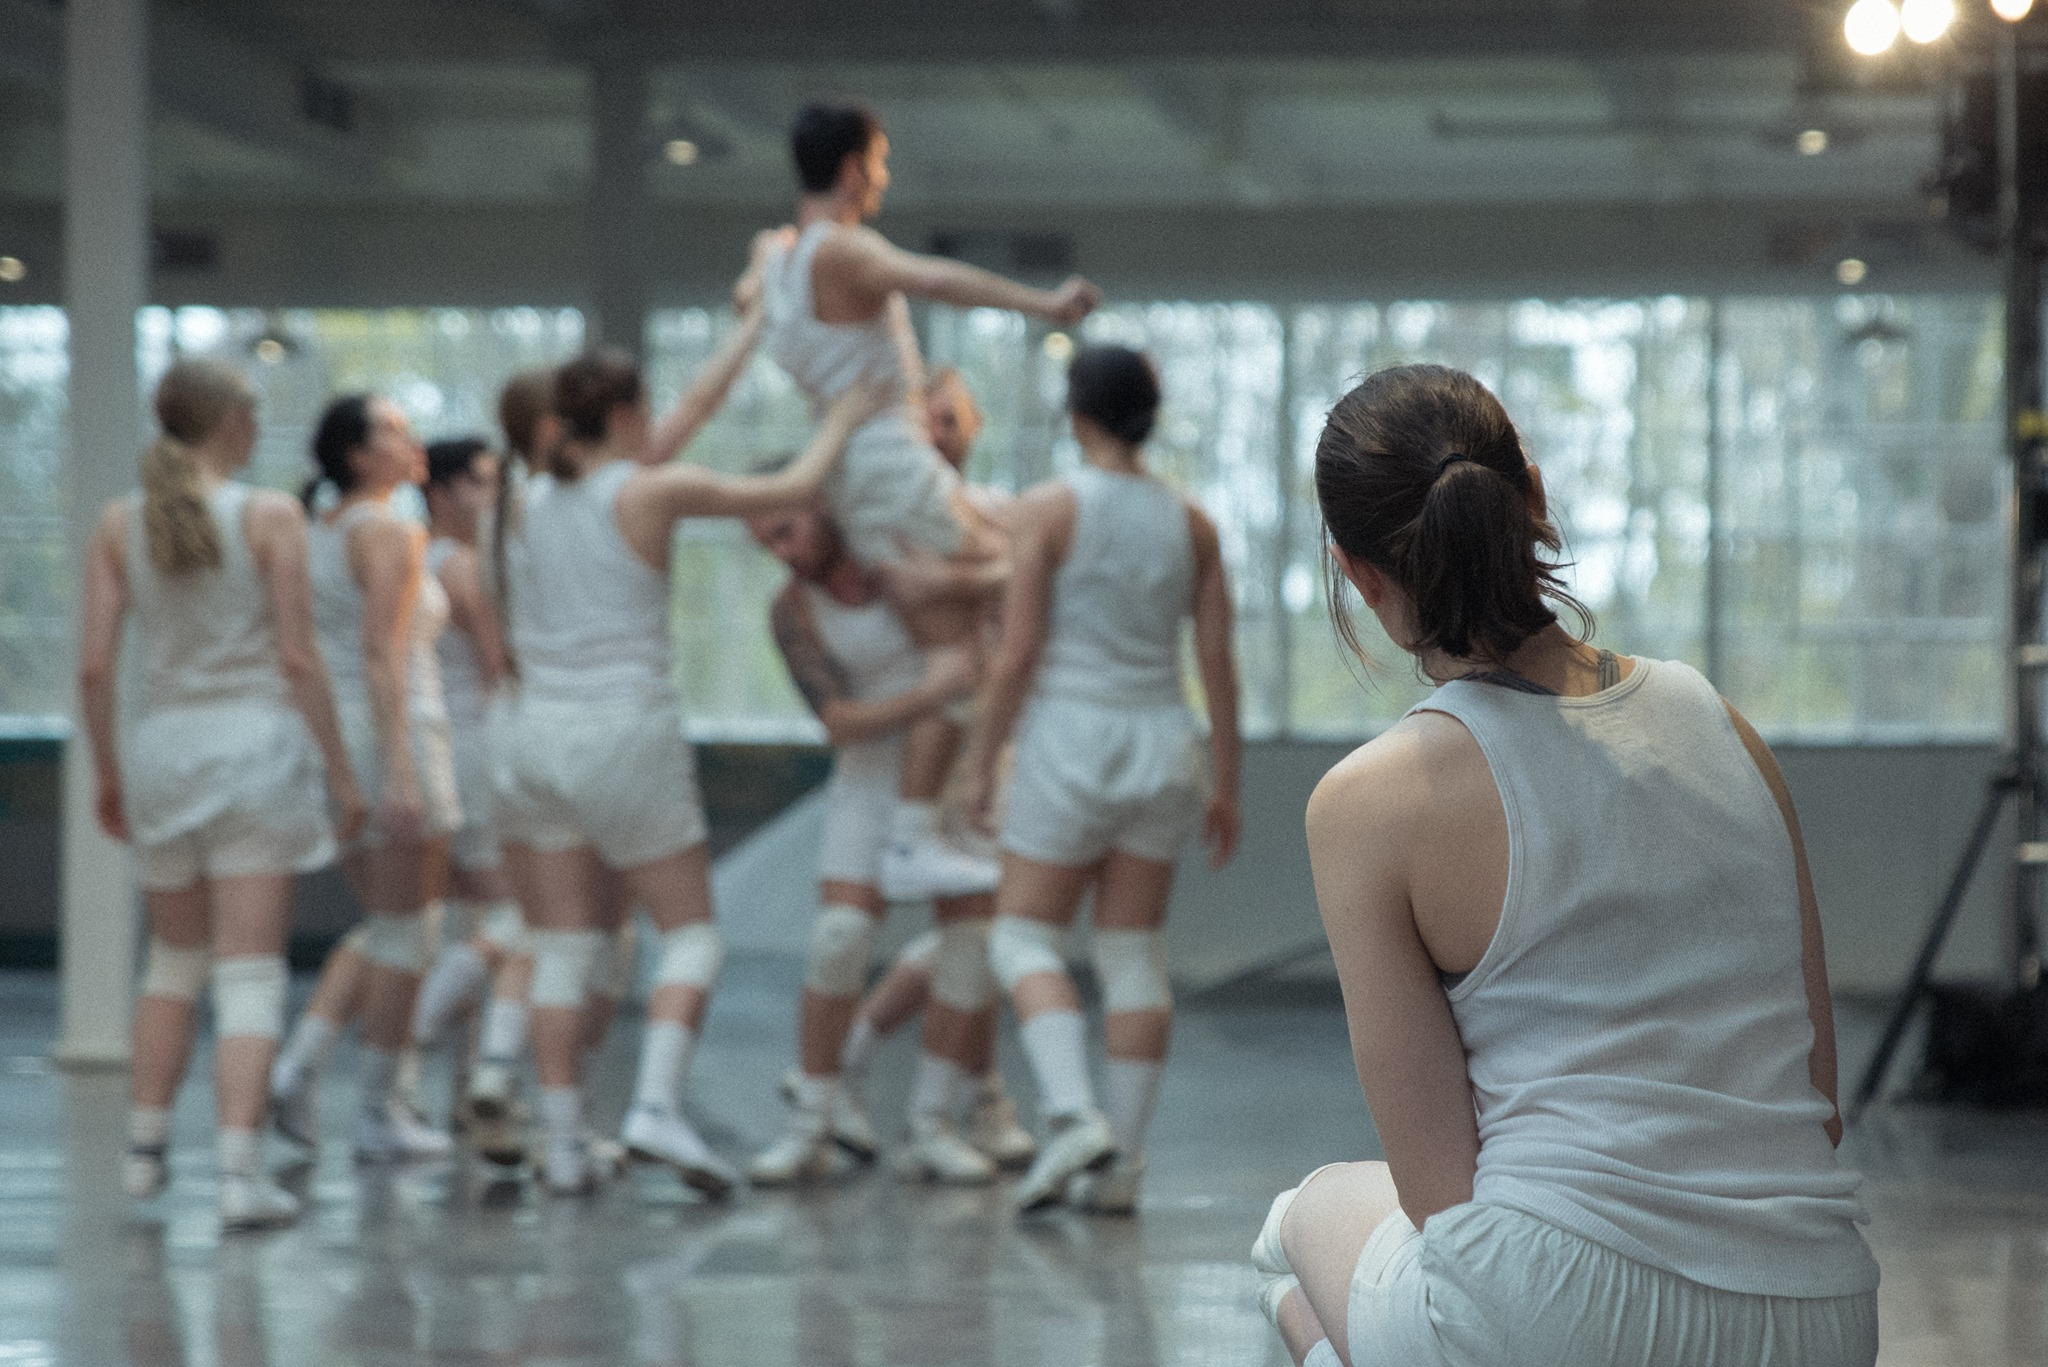 colleen snell frog in hand the movement blog interview dance arts performance canada uk